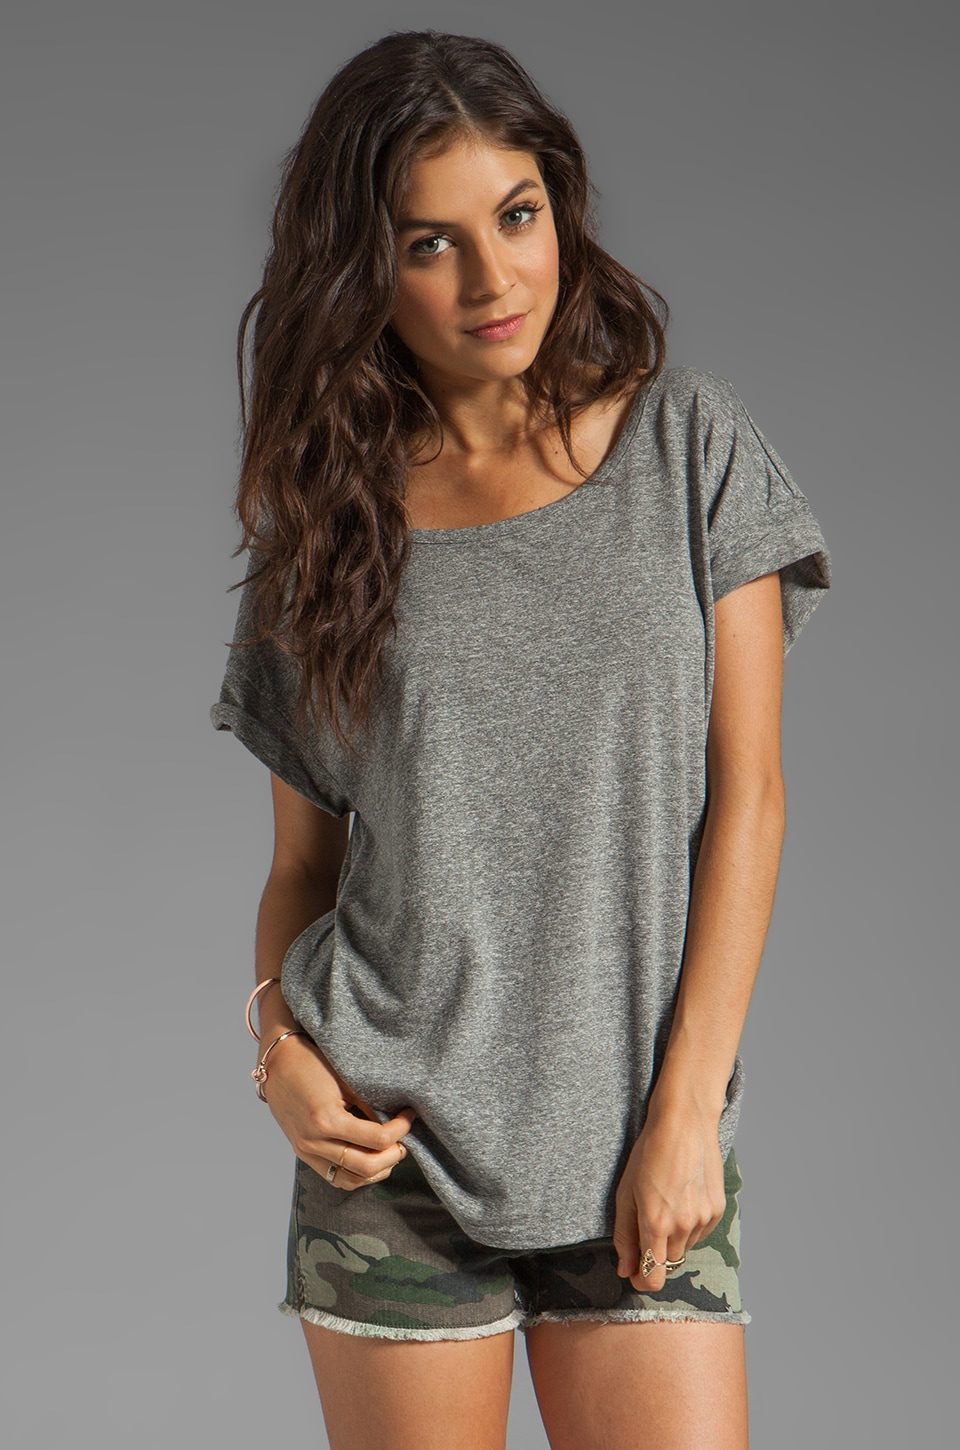 Current/Elliott The Oversize Tee in Heather Grey